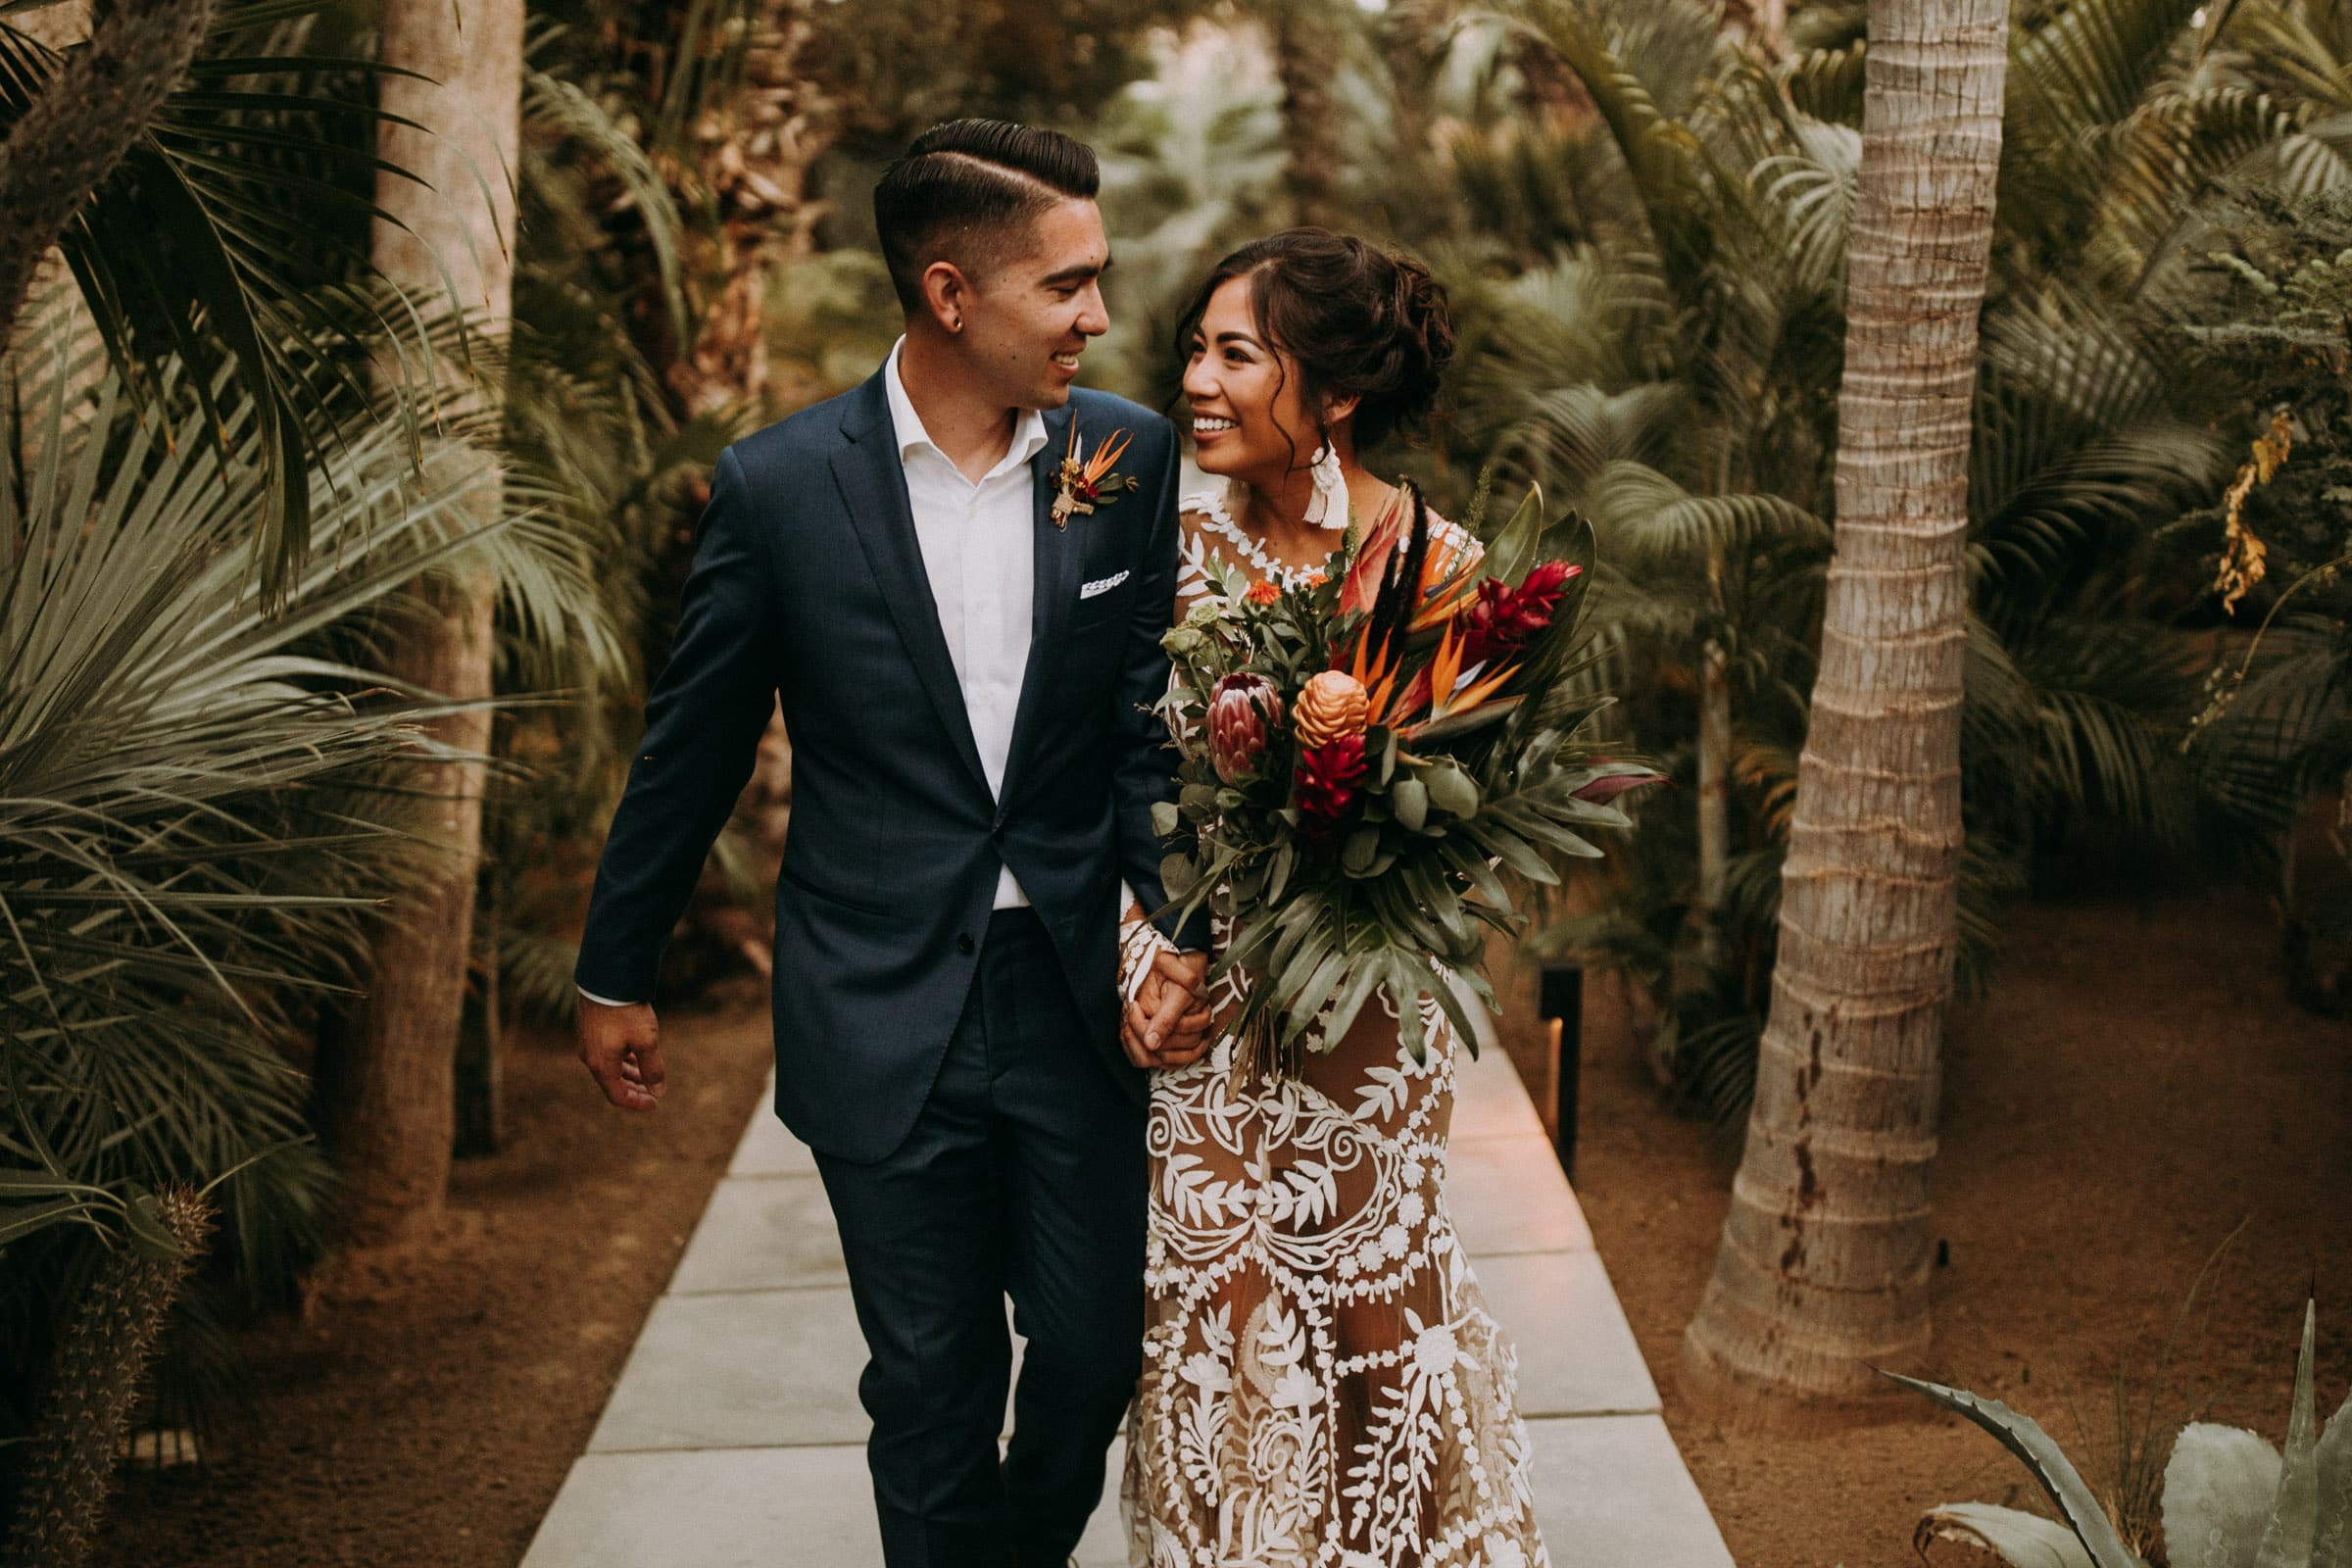 A wedding couple is walking down a pathway and is holding hands.